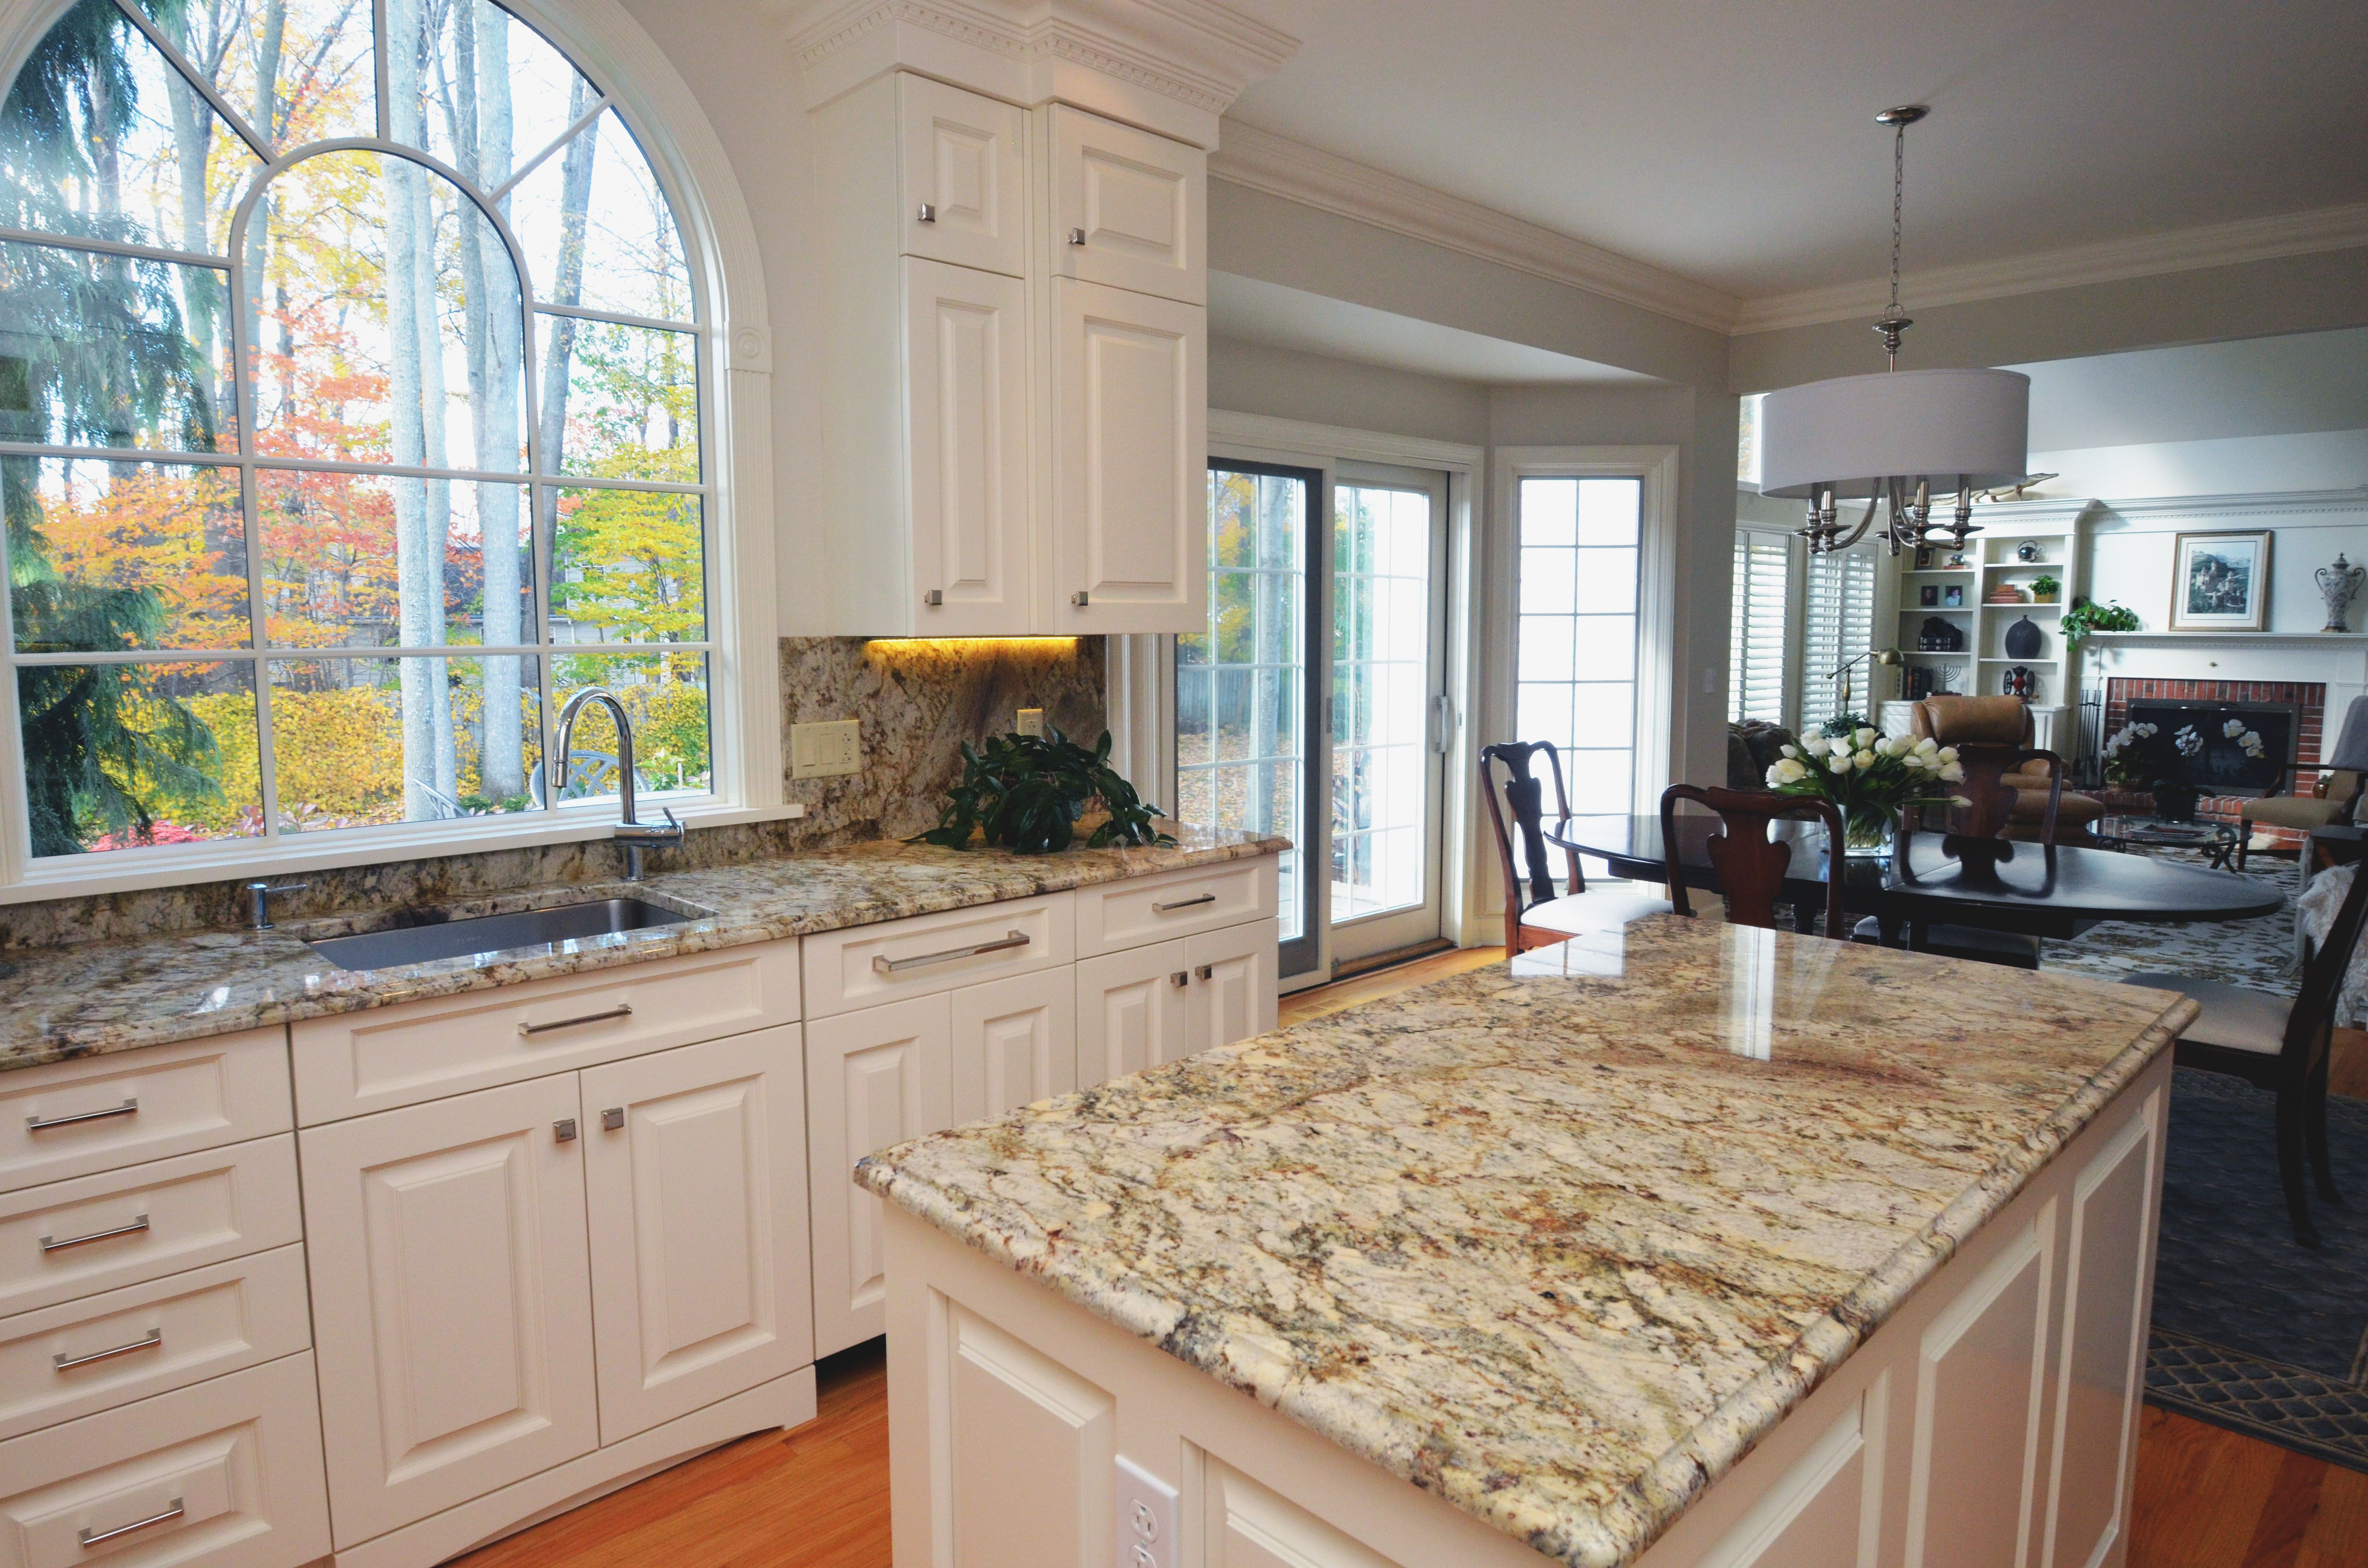 Traditional style kitchen with granite countertops and a full